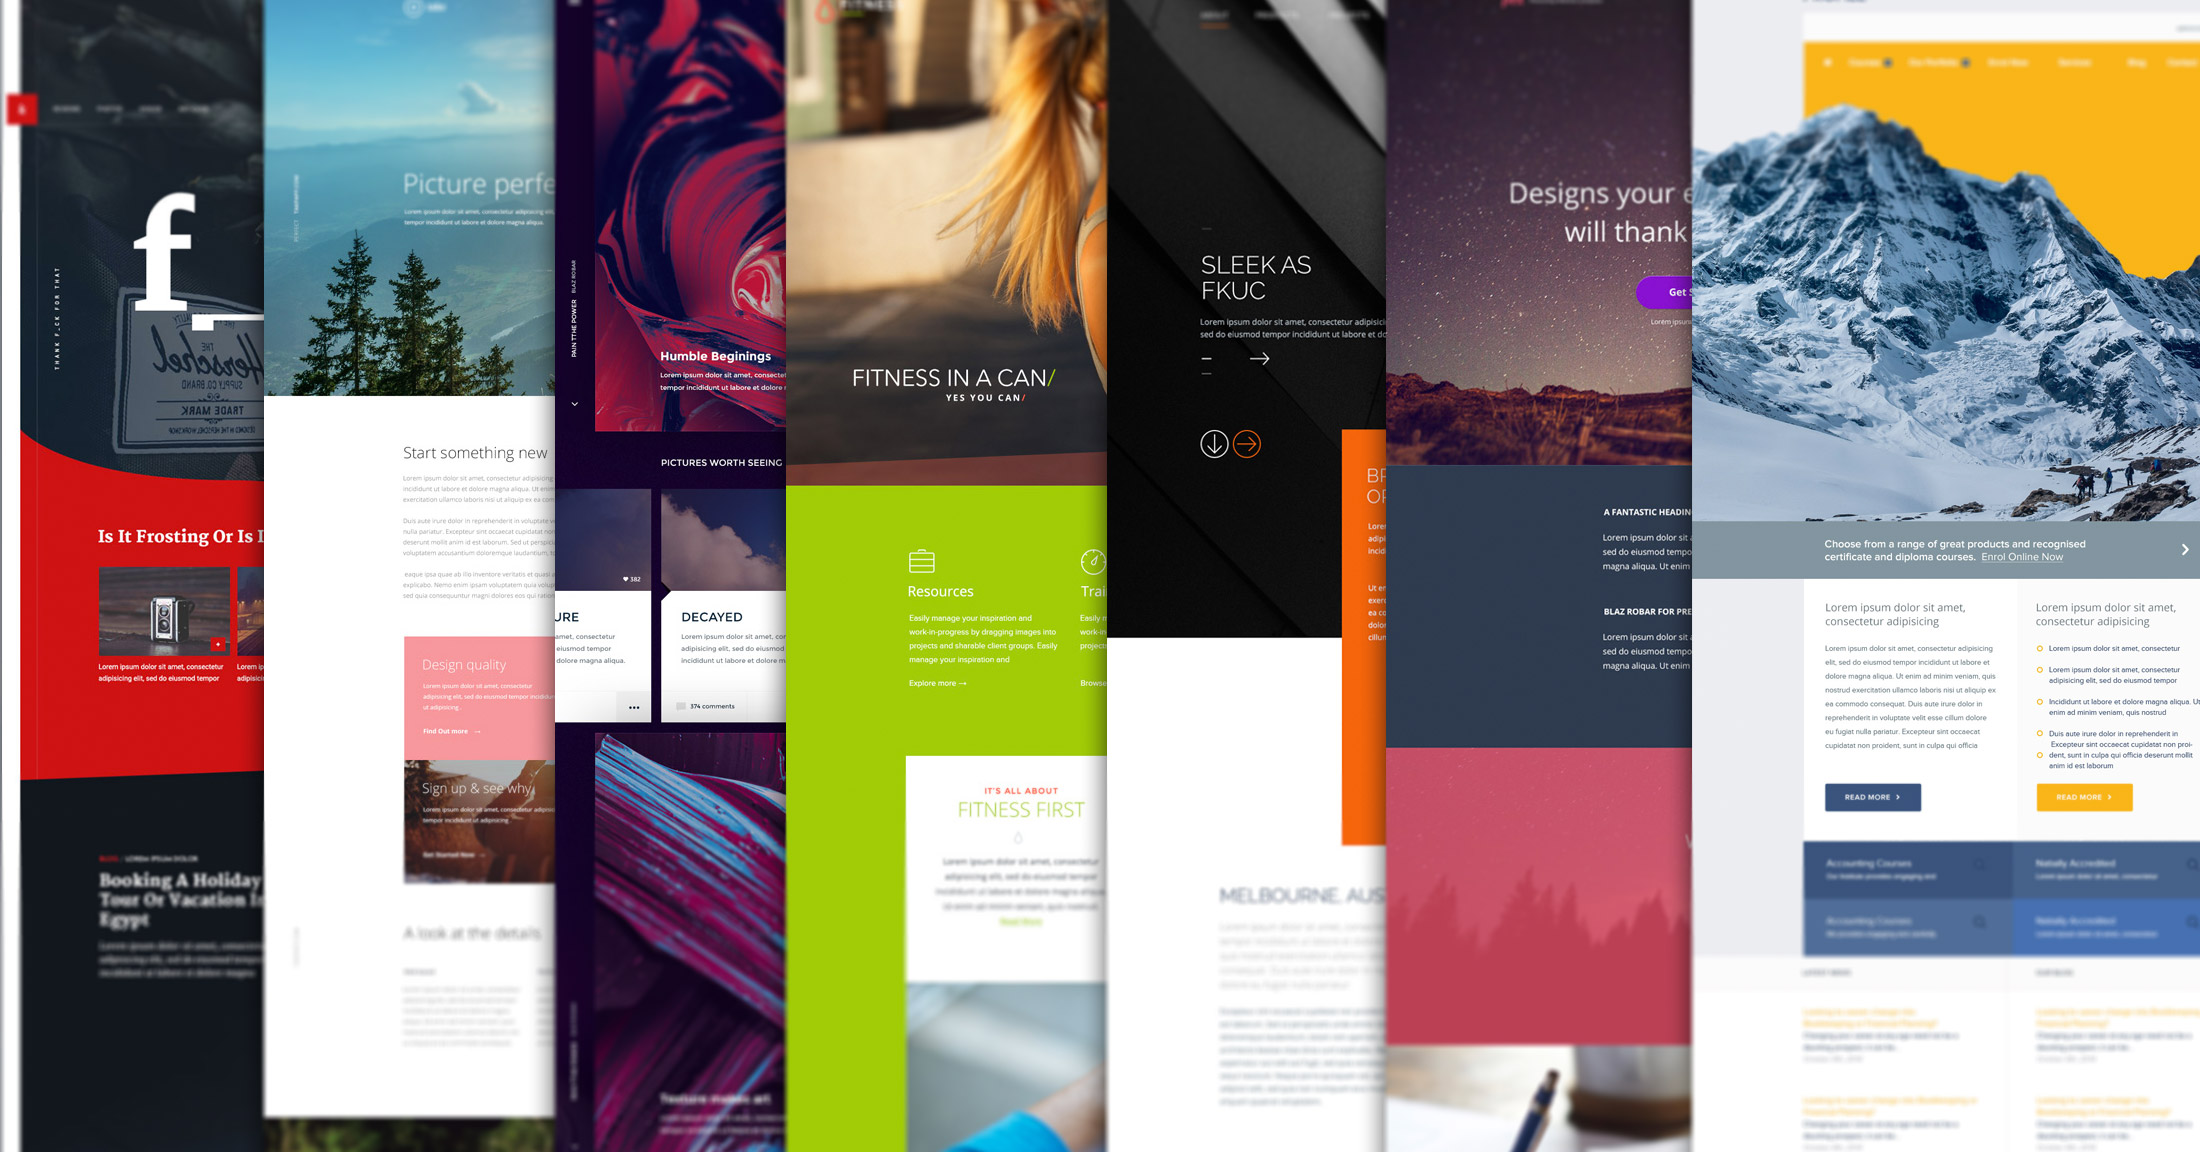 free photoshop templates - 10 free psd website templates to get any design project